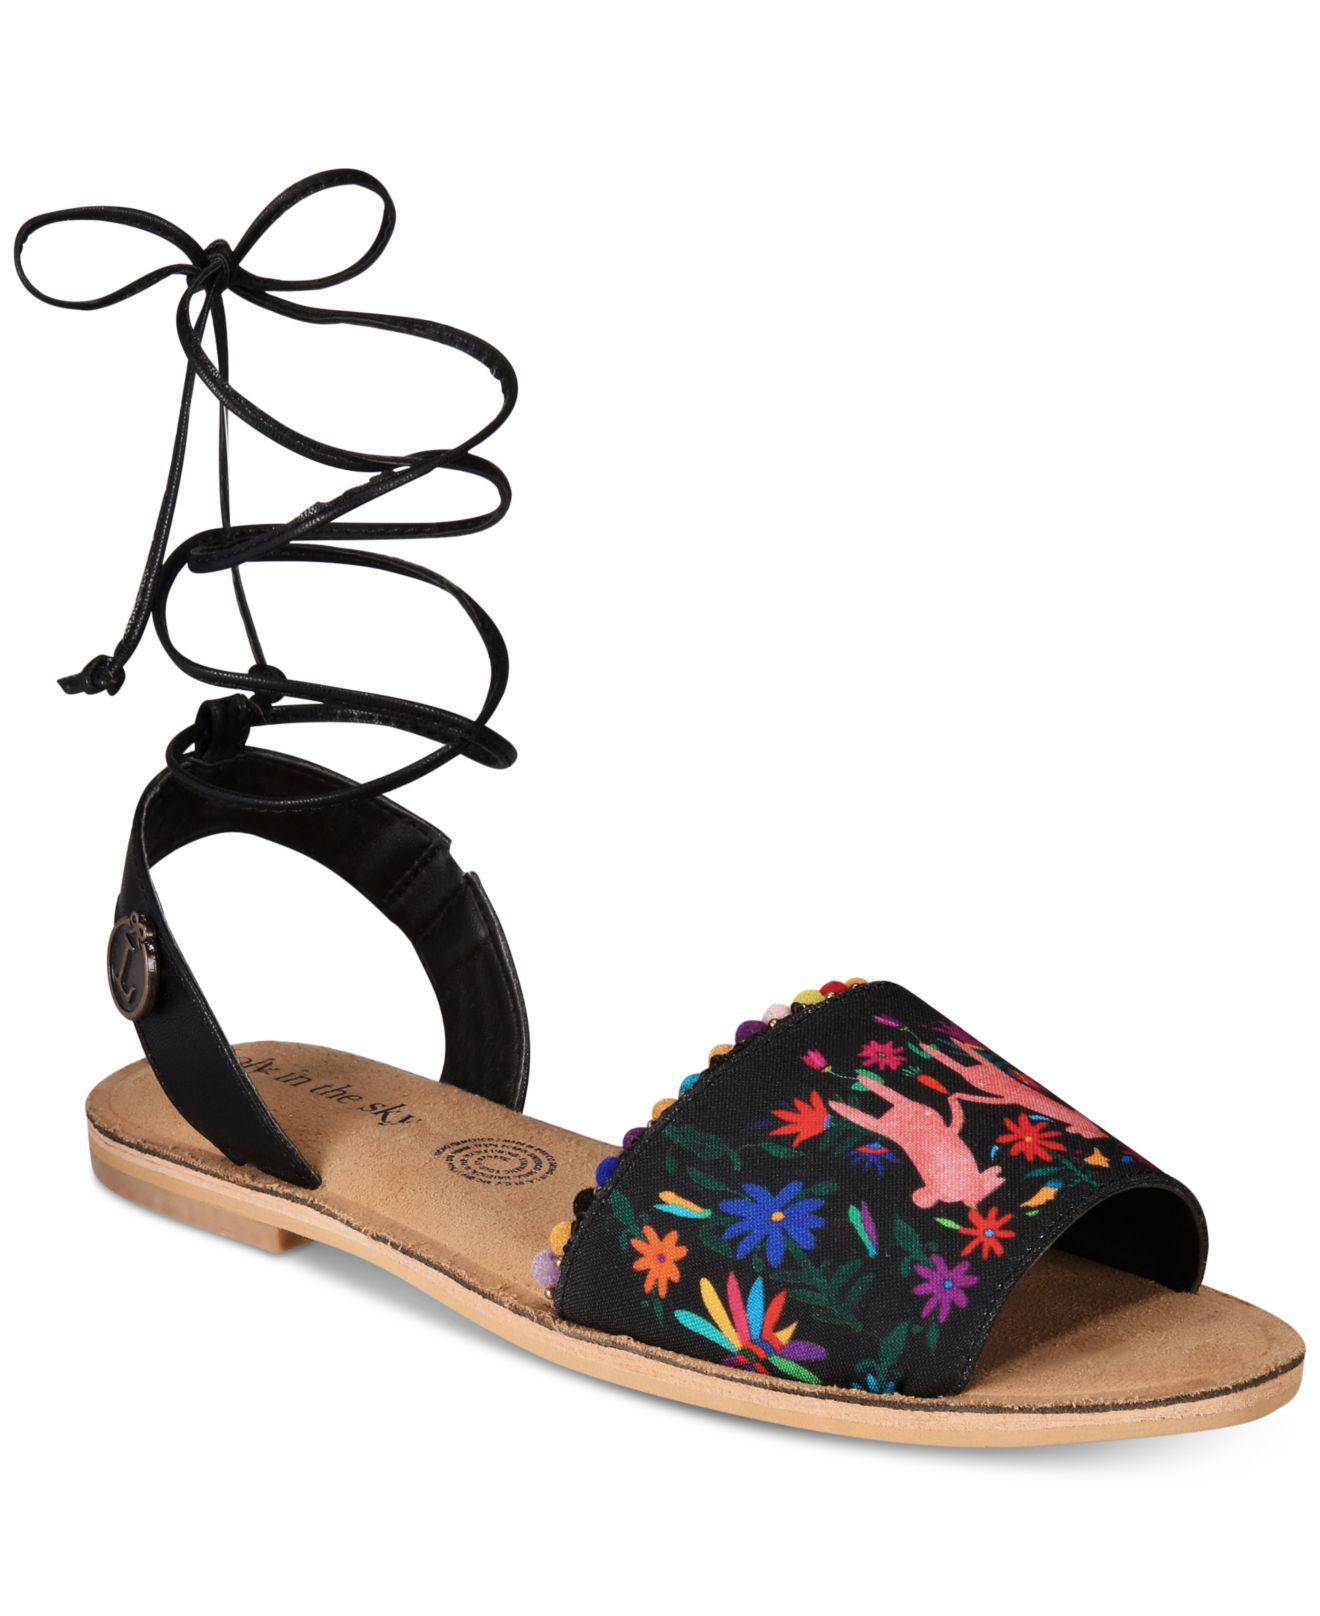 4b0bdc8c7a7e43 Loly In The Sky Pom Pom Sandals From The Workshop At Macy s - Lyst